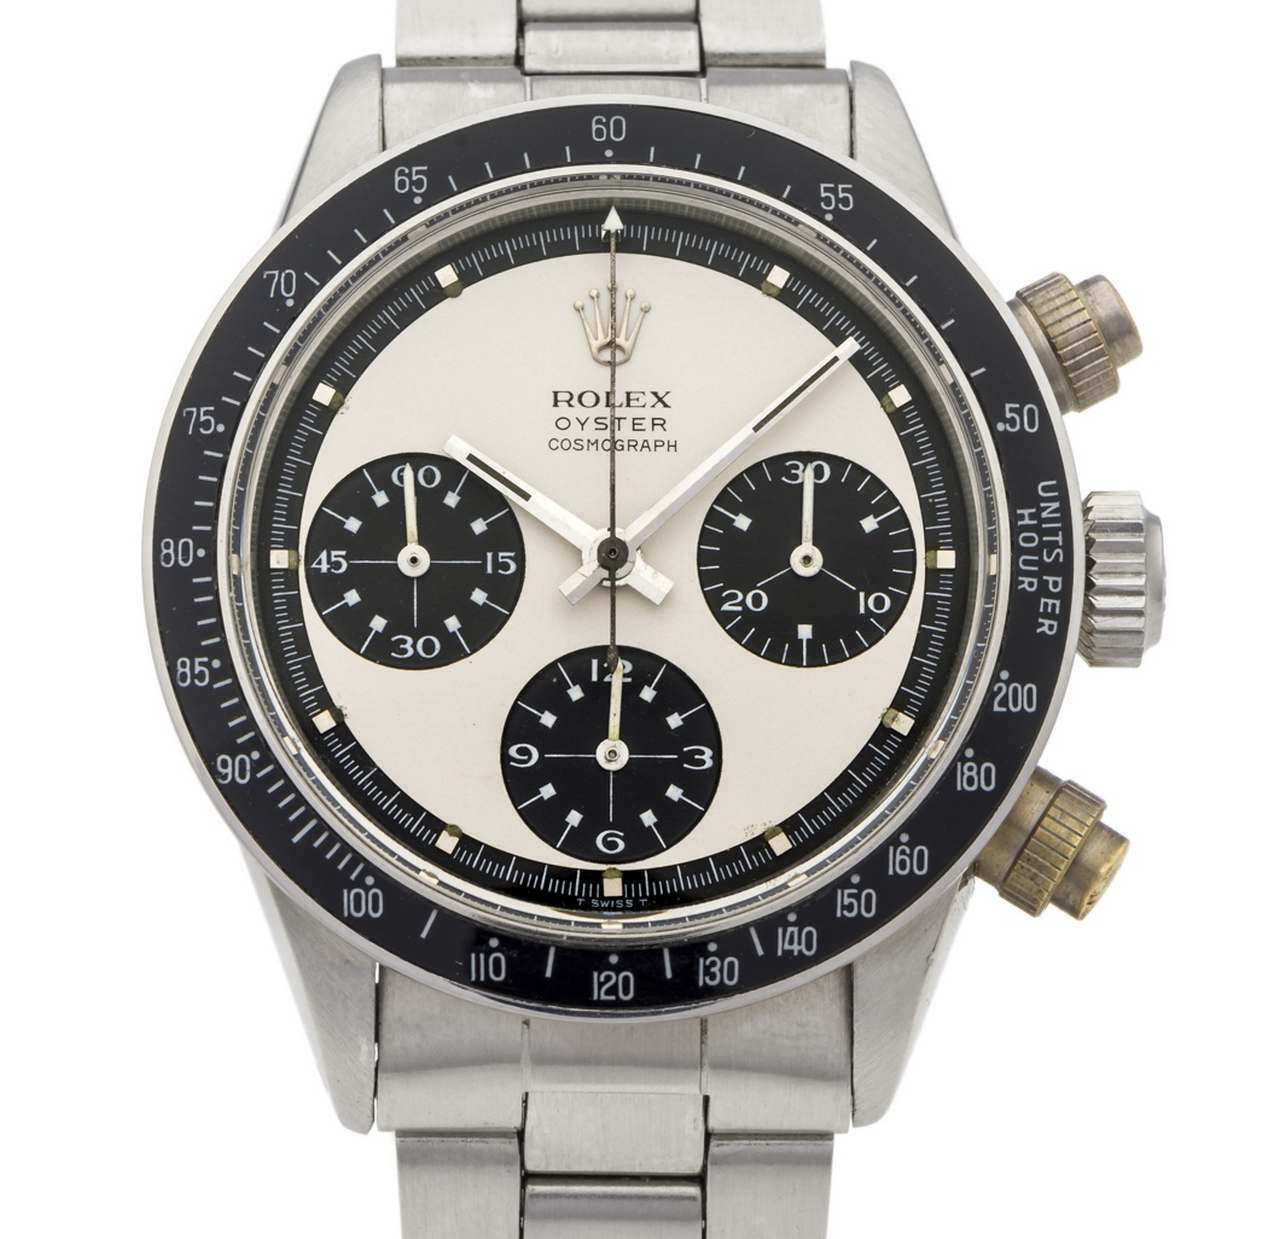 ROLEX, REF. 6263 PAUL NEWMAN STEEL Rolex, Oyster Cosmograph,case No. 2648402, Ref. 6263_6262_source_antiquorum_0-100.